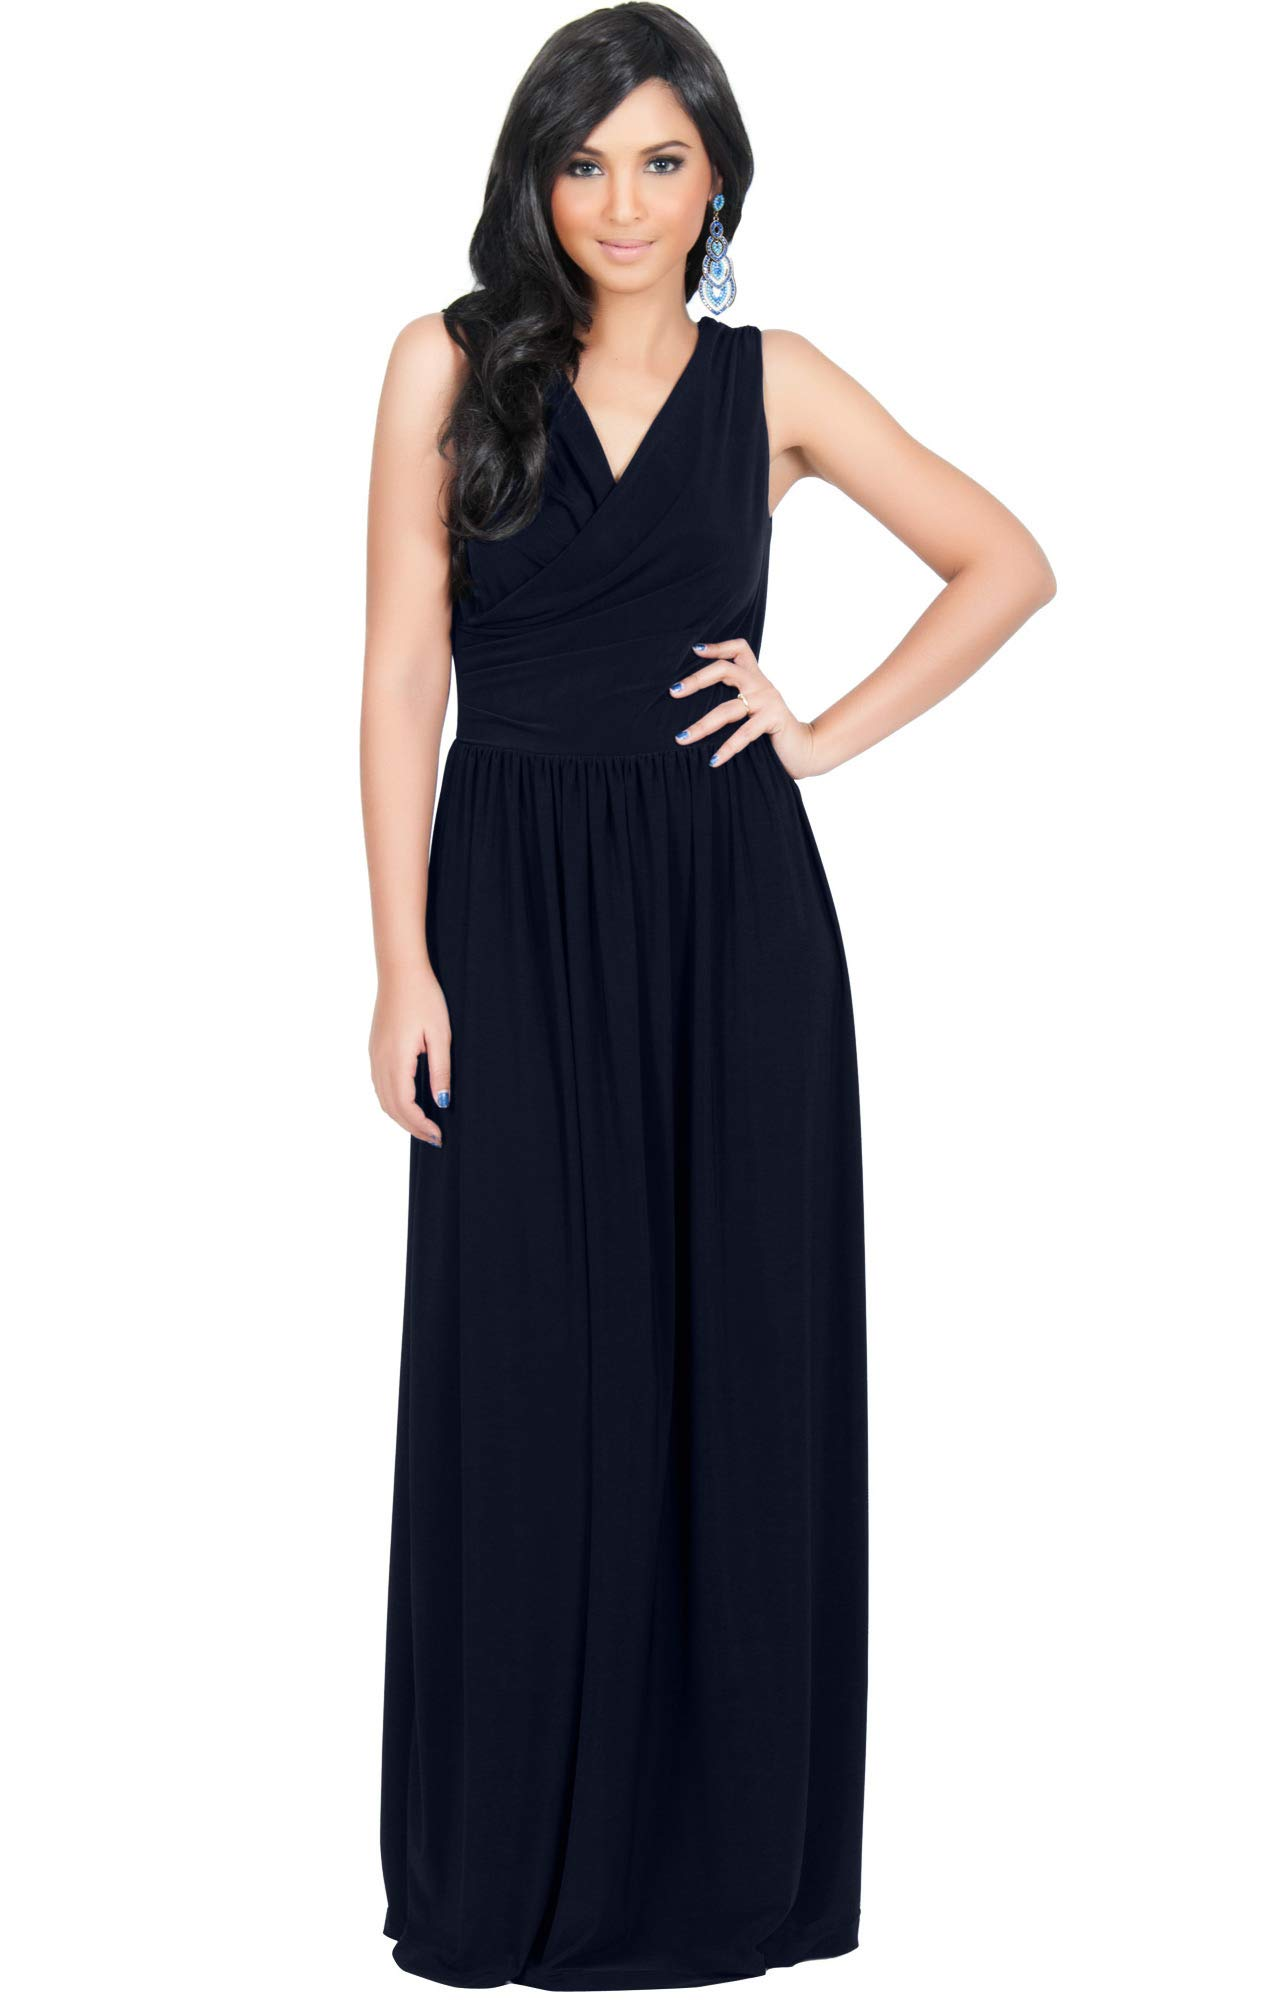 dcf94762615 KOH KOH Plus Size Womens Long Sleeveless Sexy Summer Semi Formal Bridesmaid Wedding  Guest Evening Sundress Sundresses Flowy Gown Gowns Maxi Dress Dresses